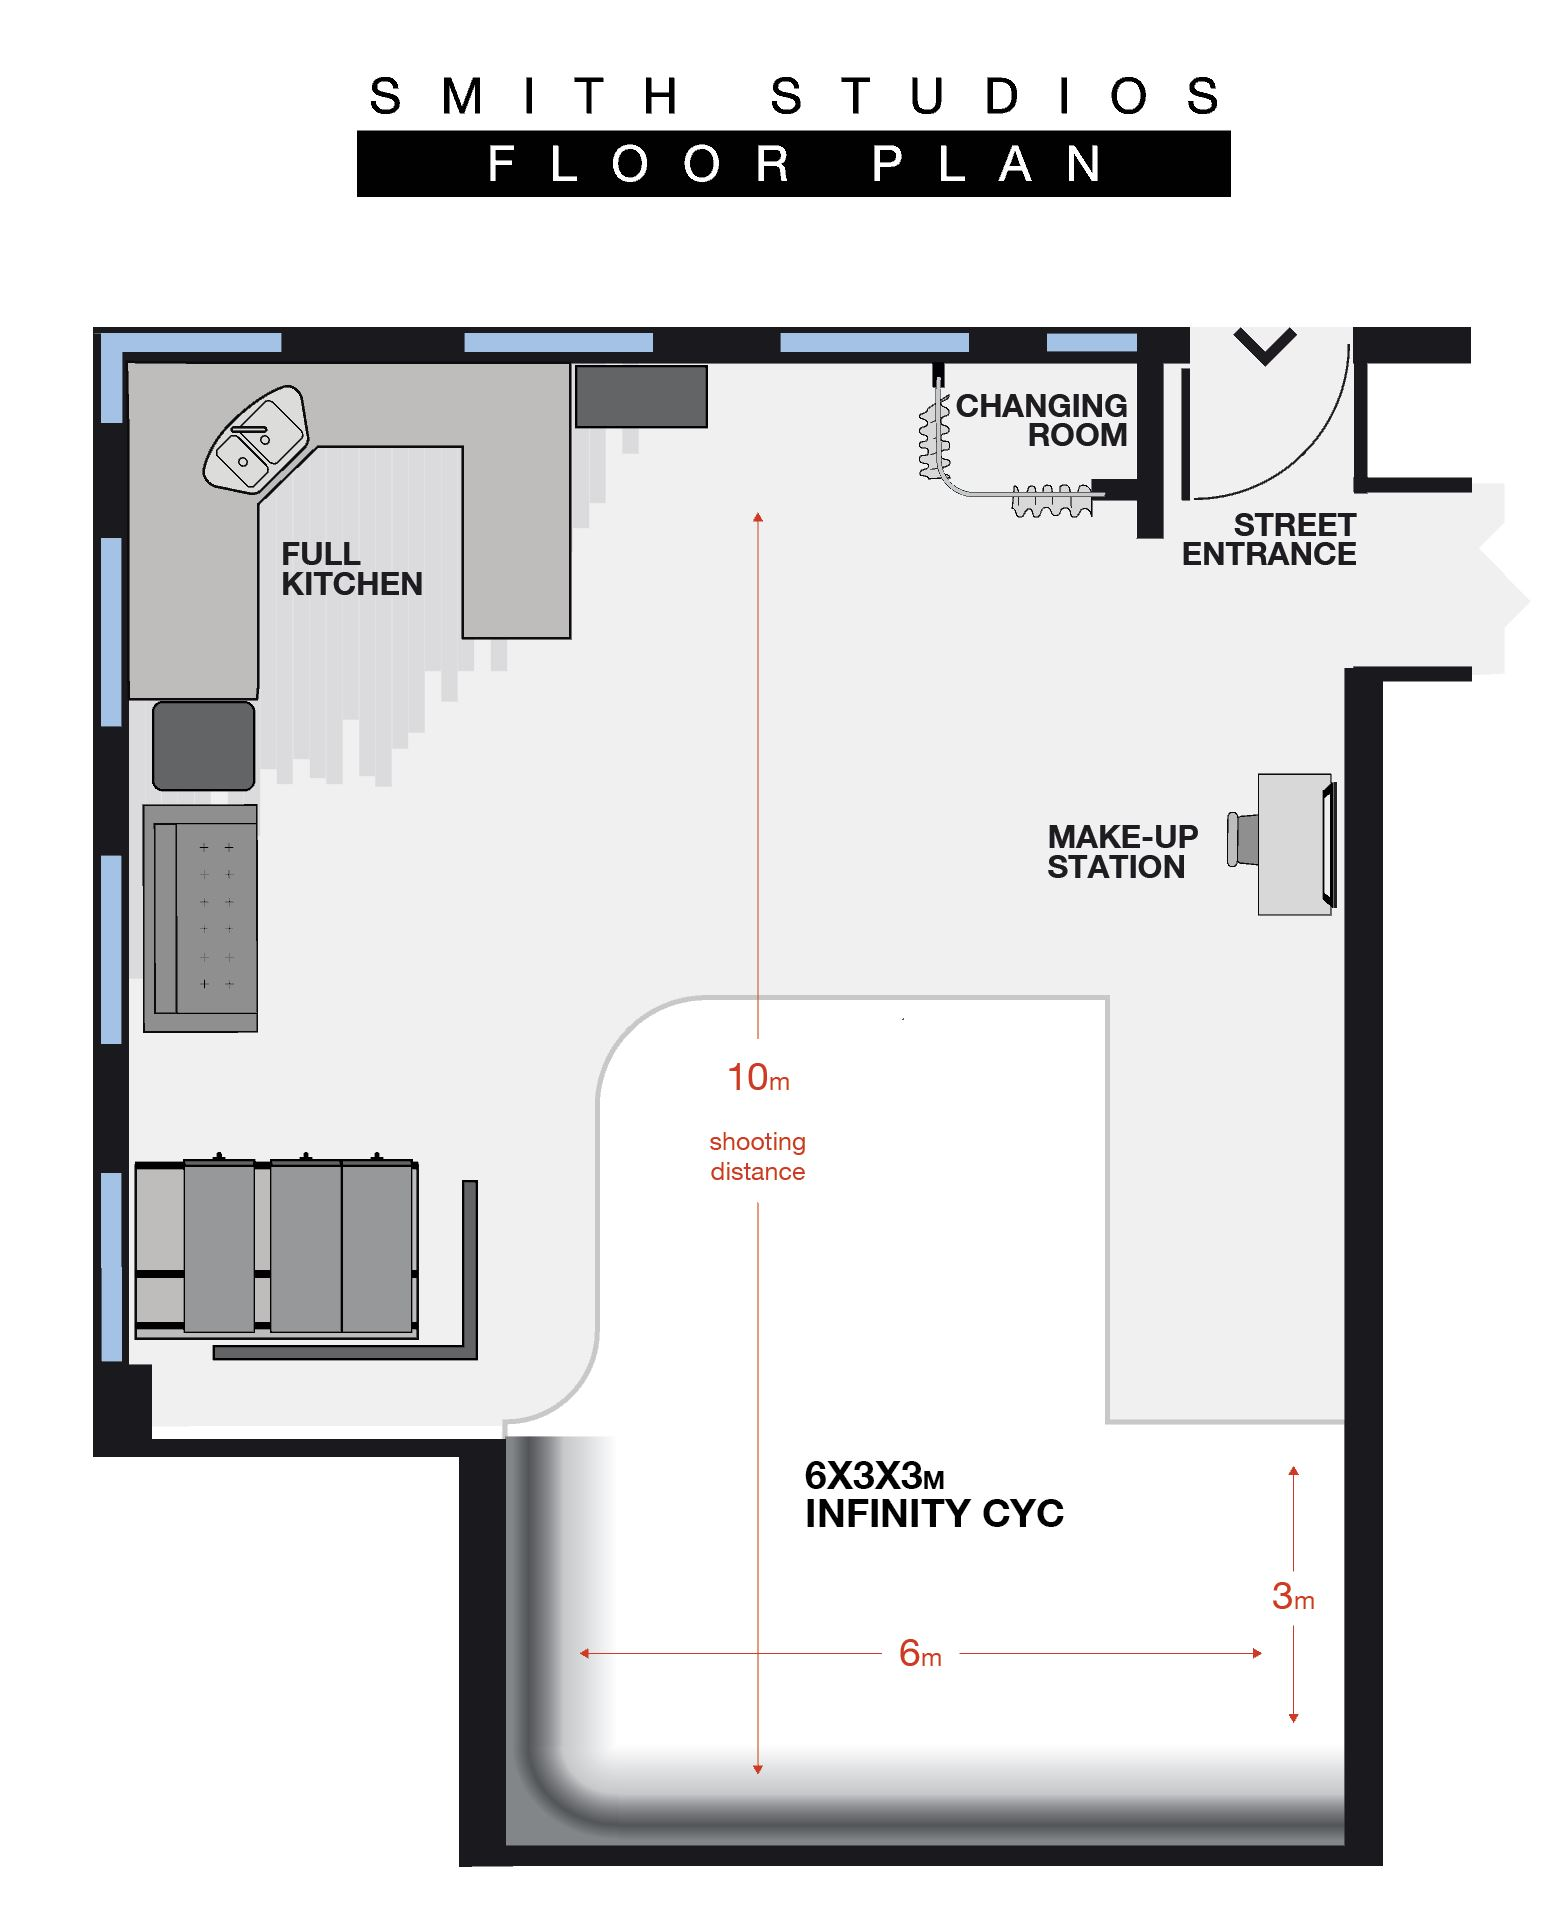 photography-studio-auckland-smith-studios-floor-plan_LARGE.jpg